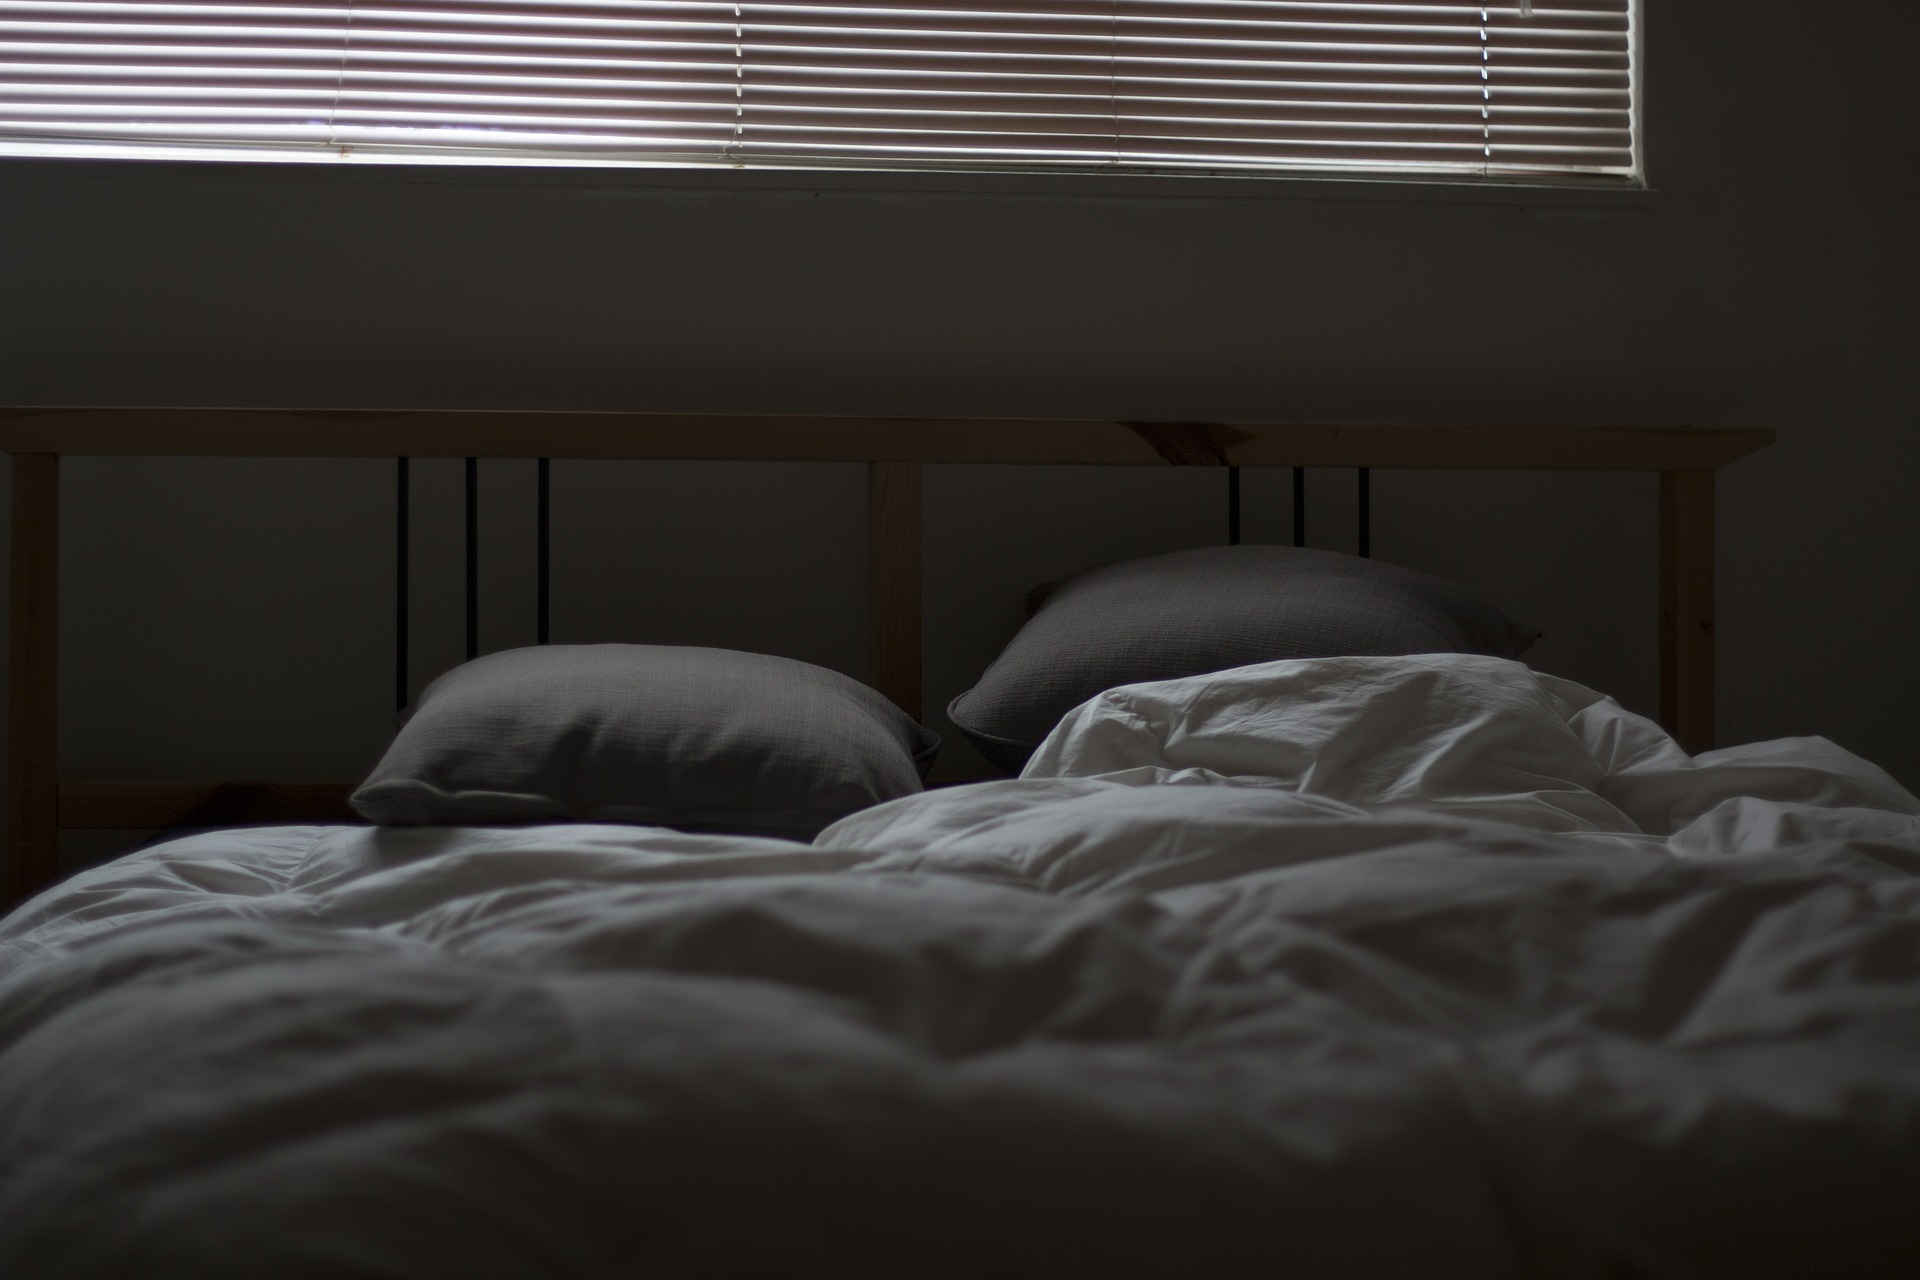 bed-731162_1920